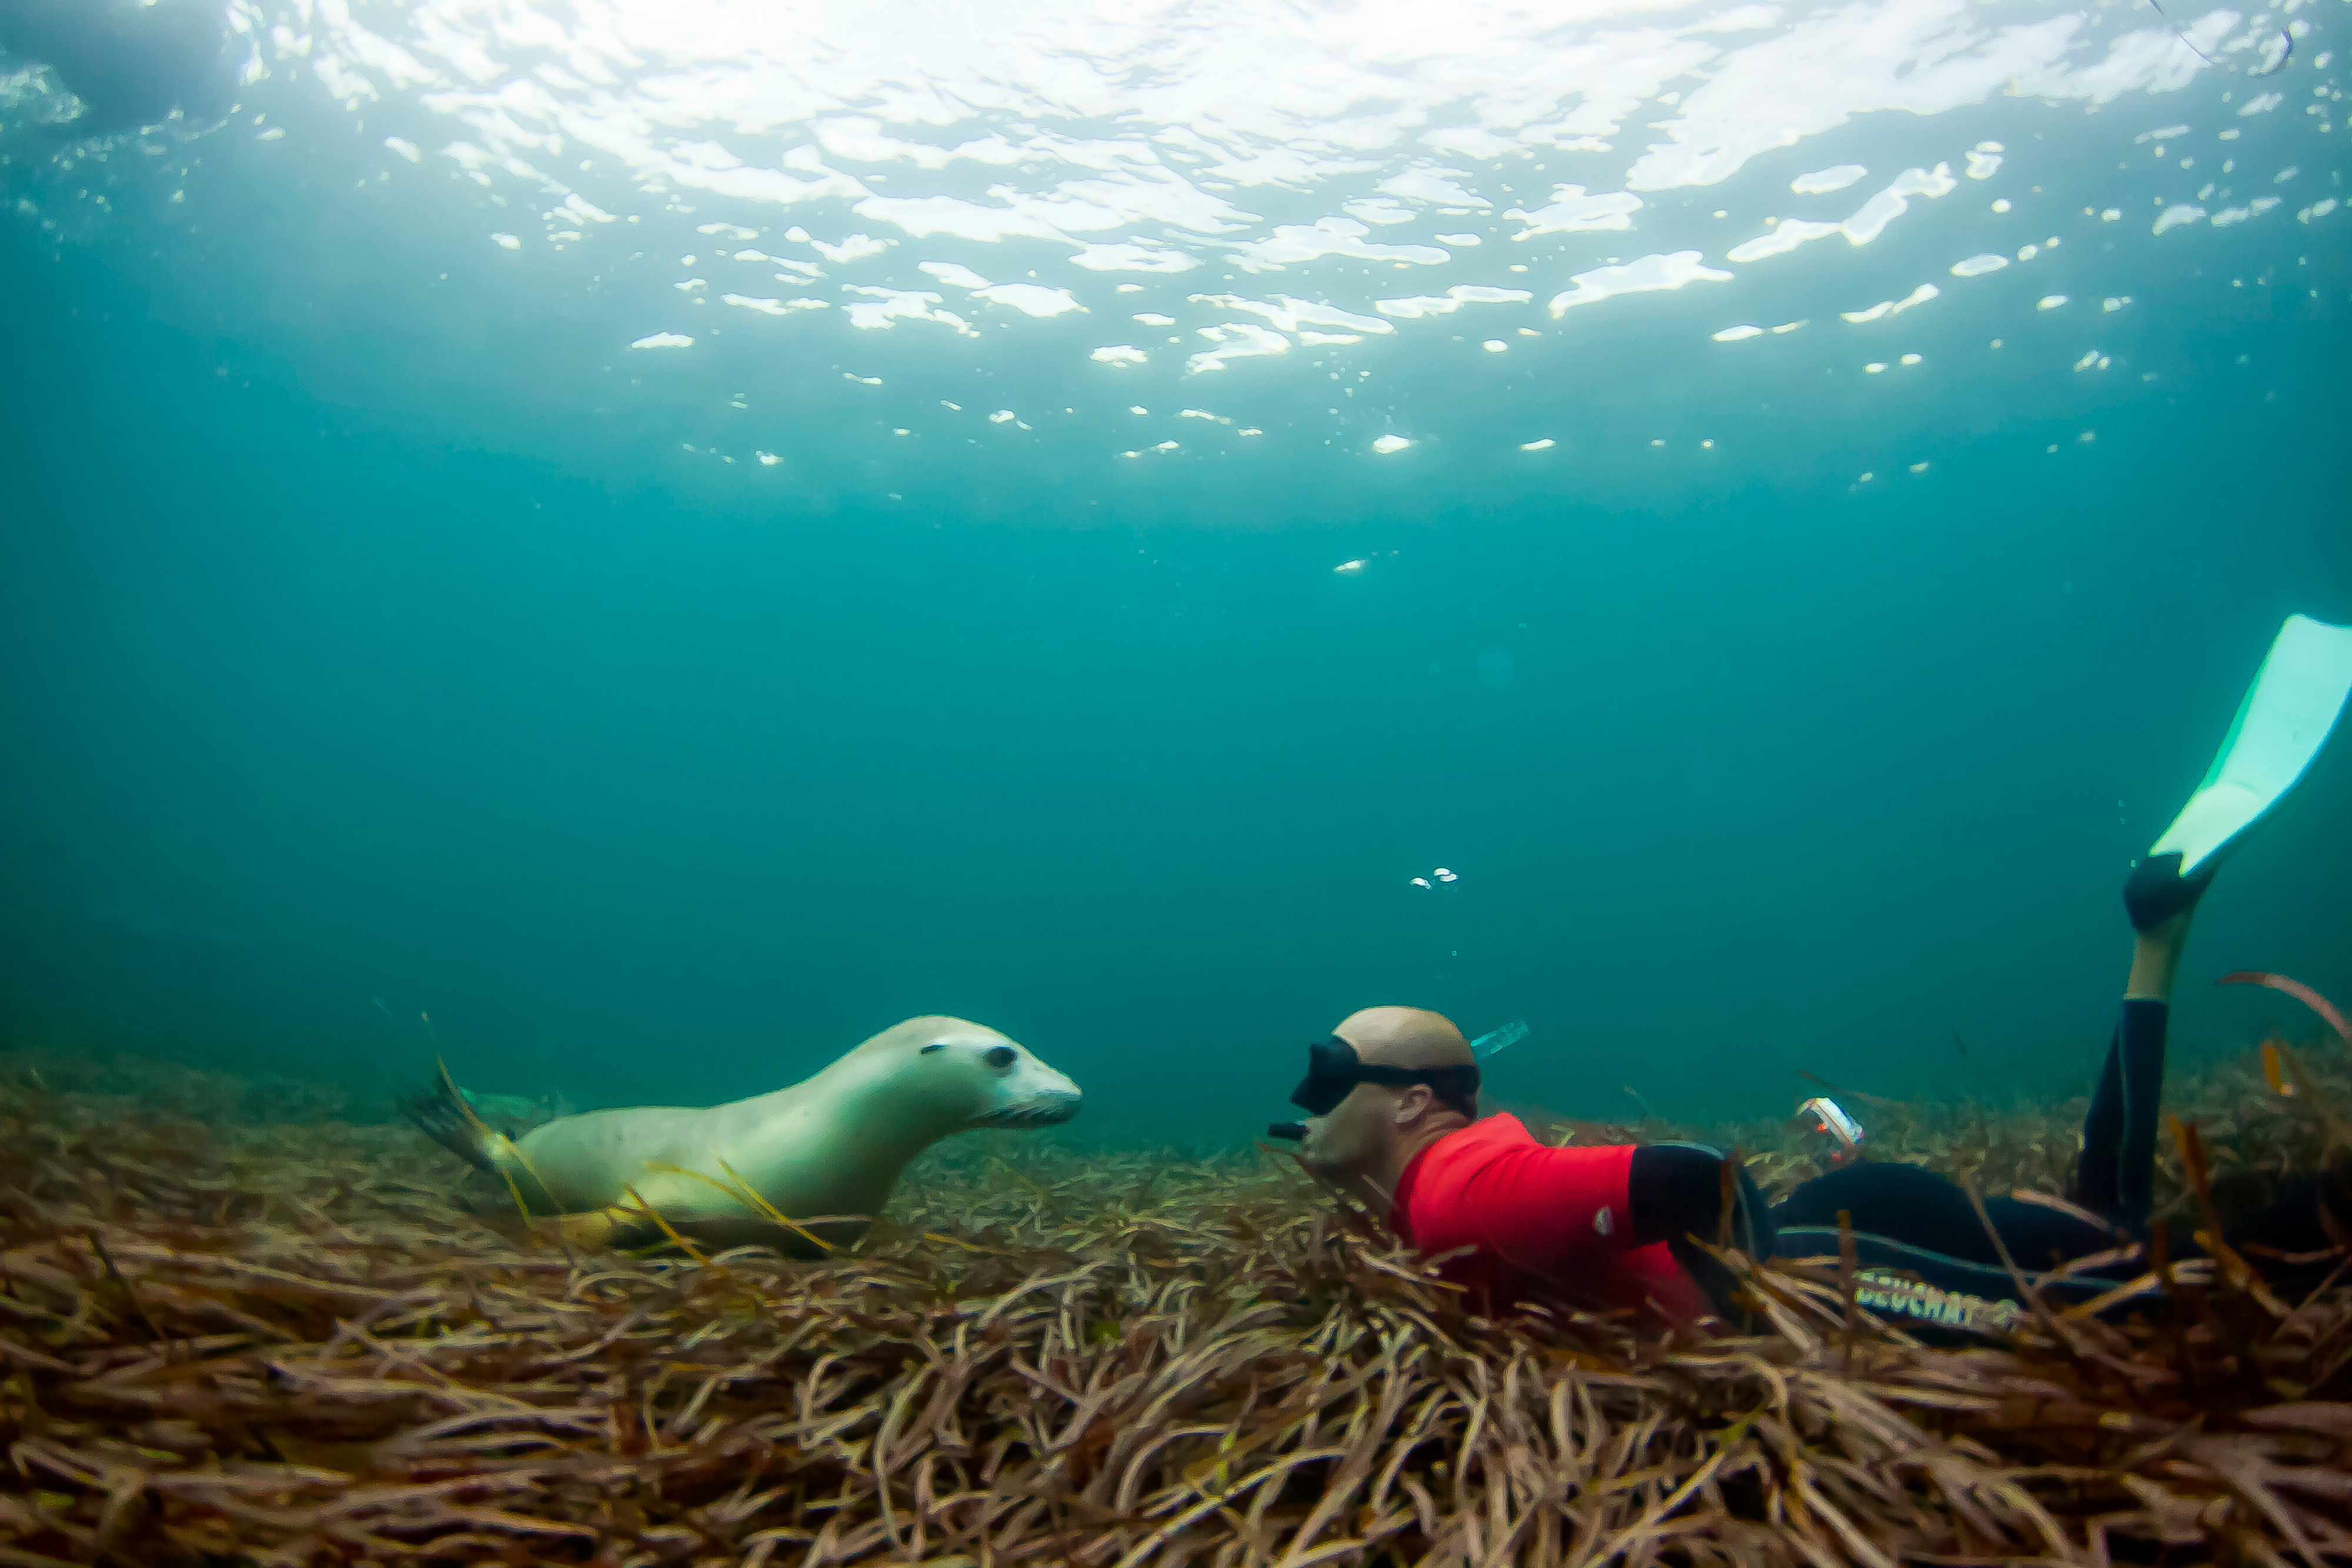 Swimming with the Sea Lions - Photo credit: Adventure Bay Charters